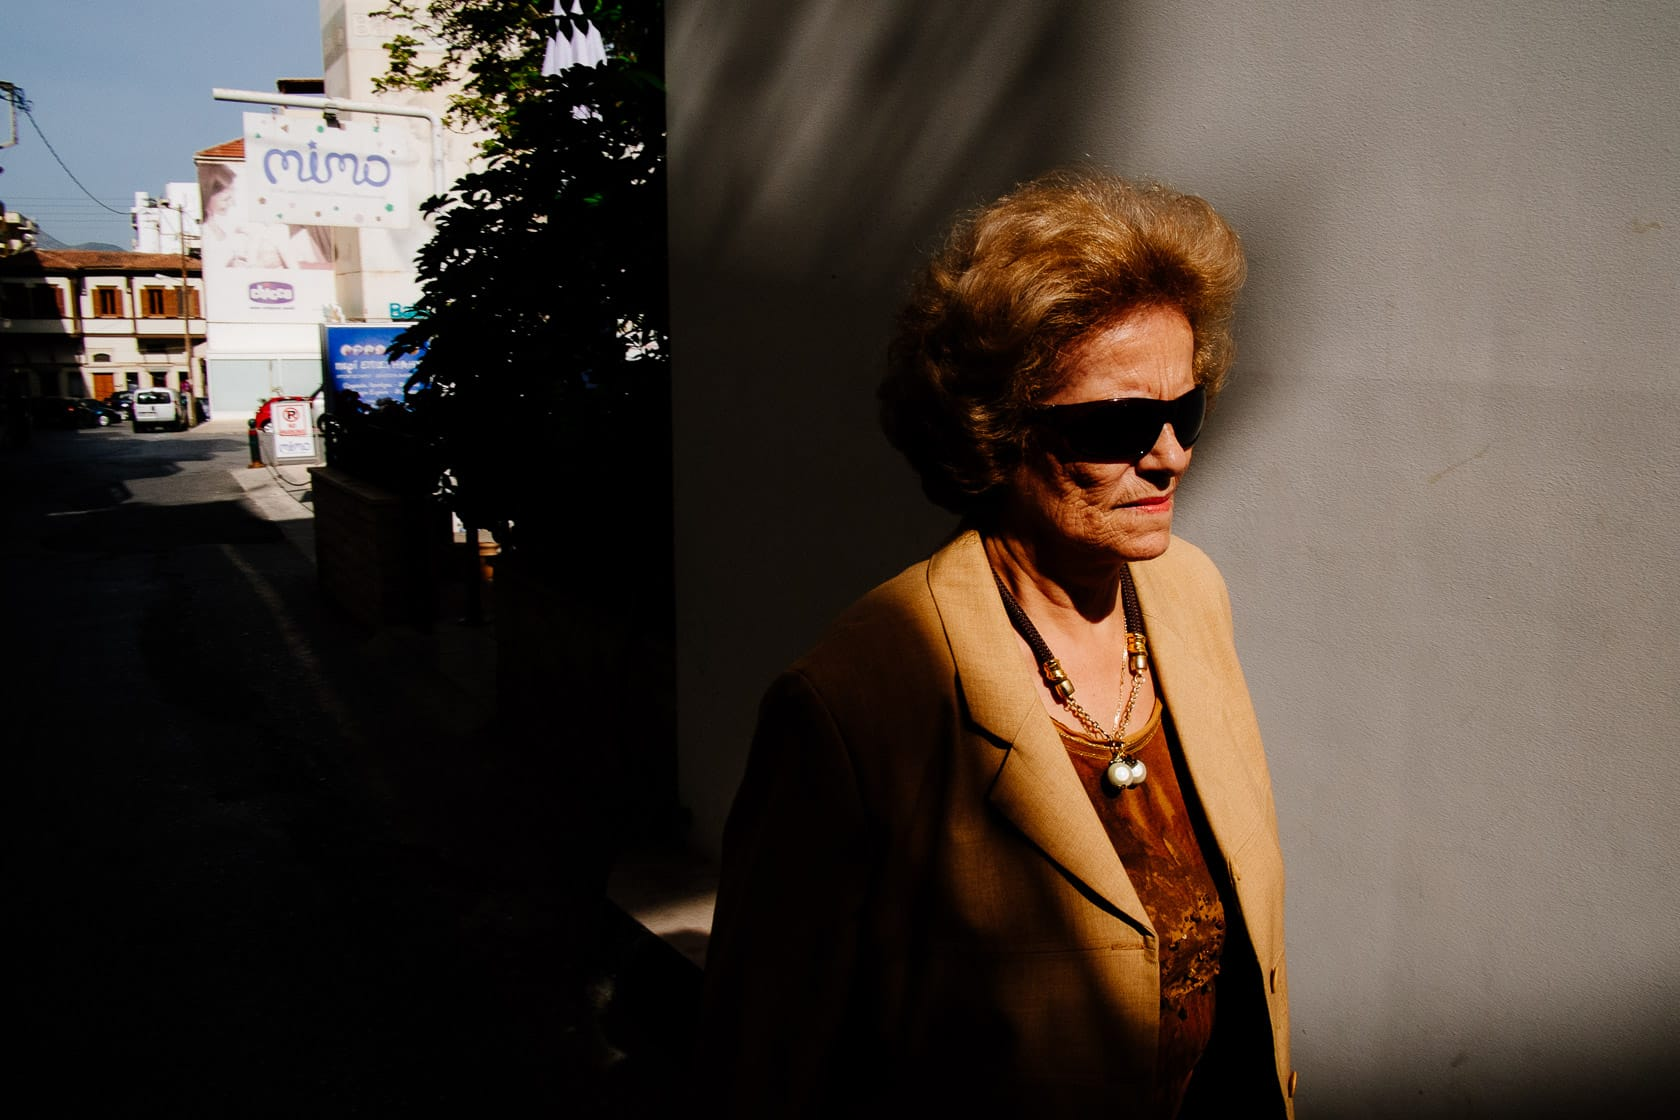 Going Public: Putting Your Street Photos Online 3